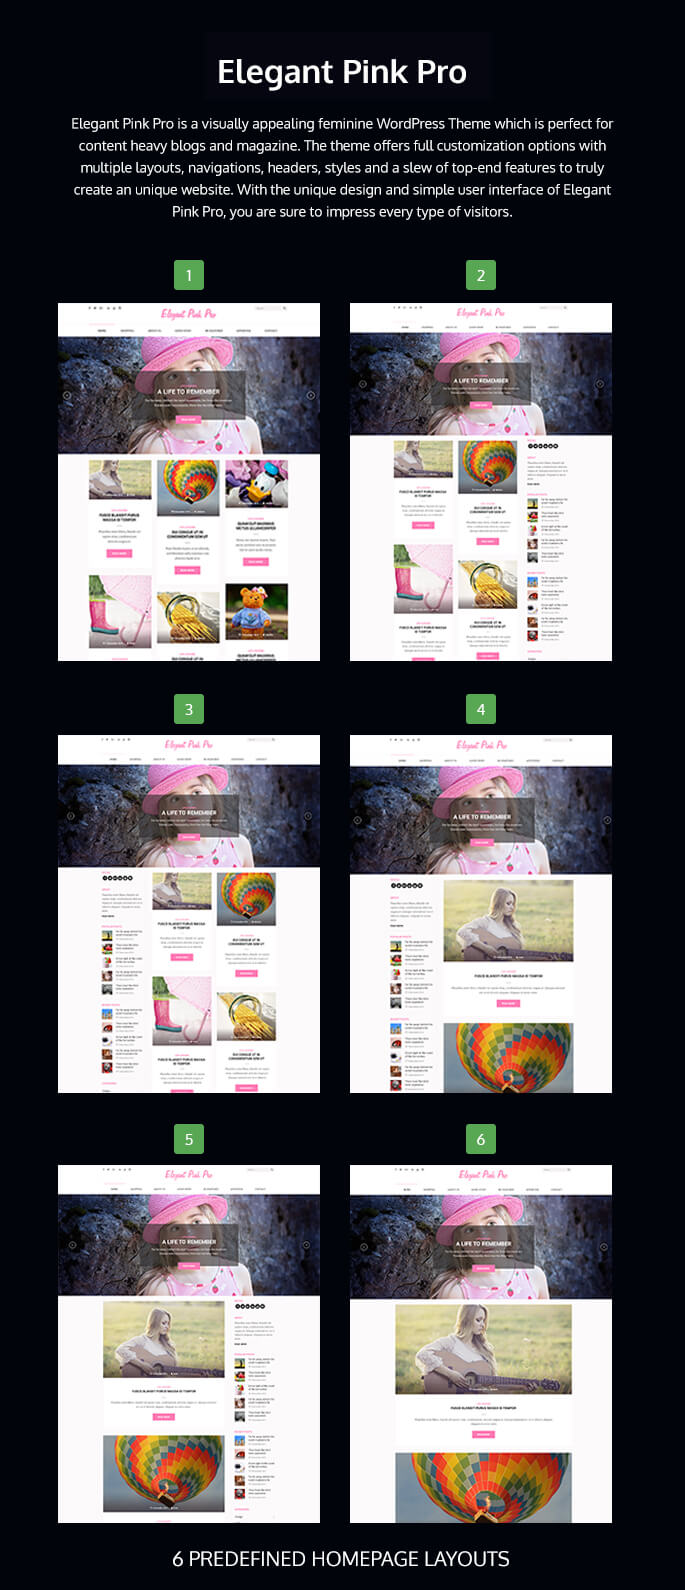 homepage layout of Elegant pink pro